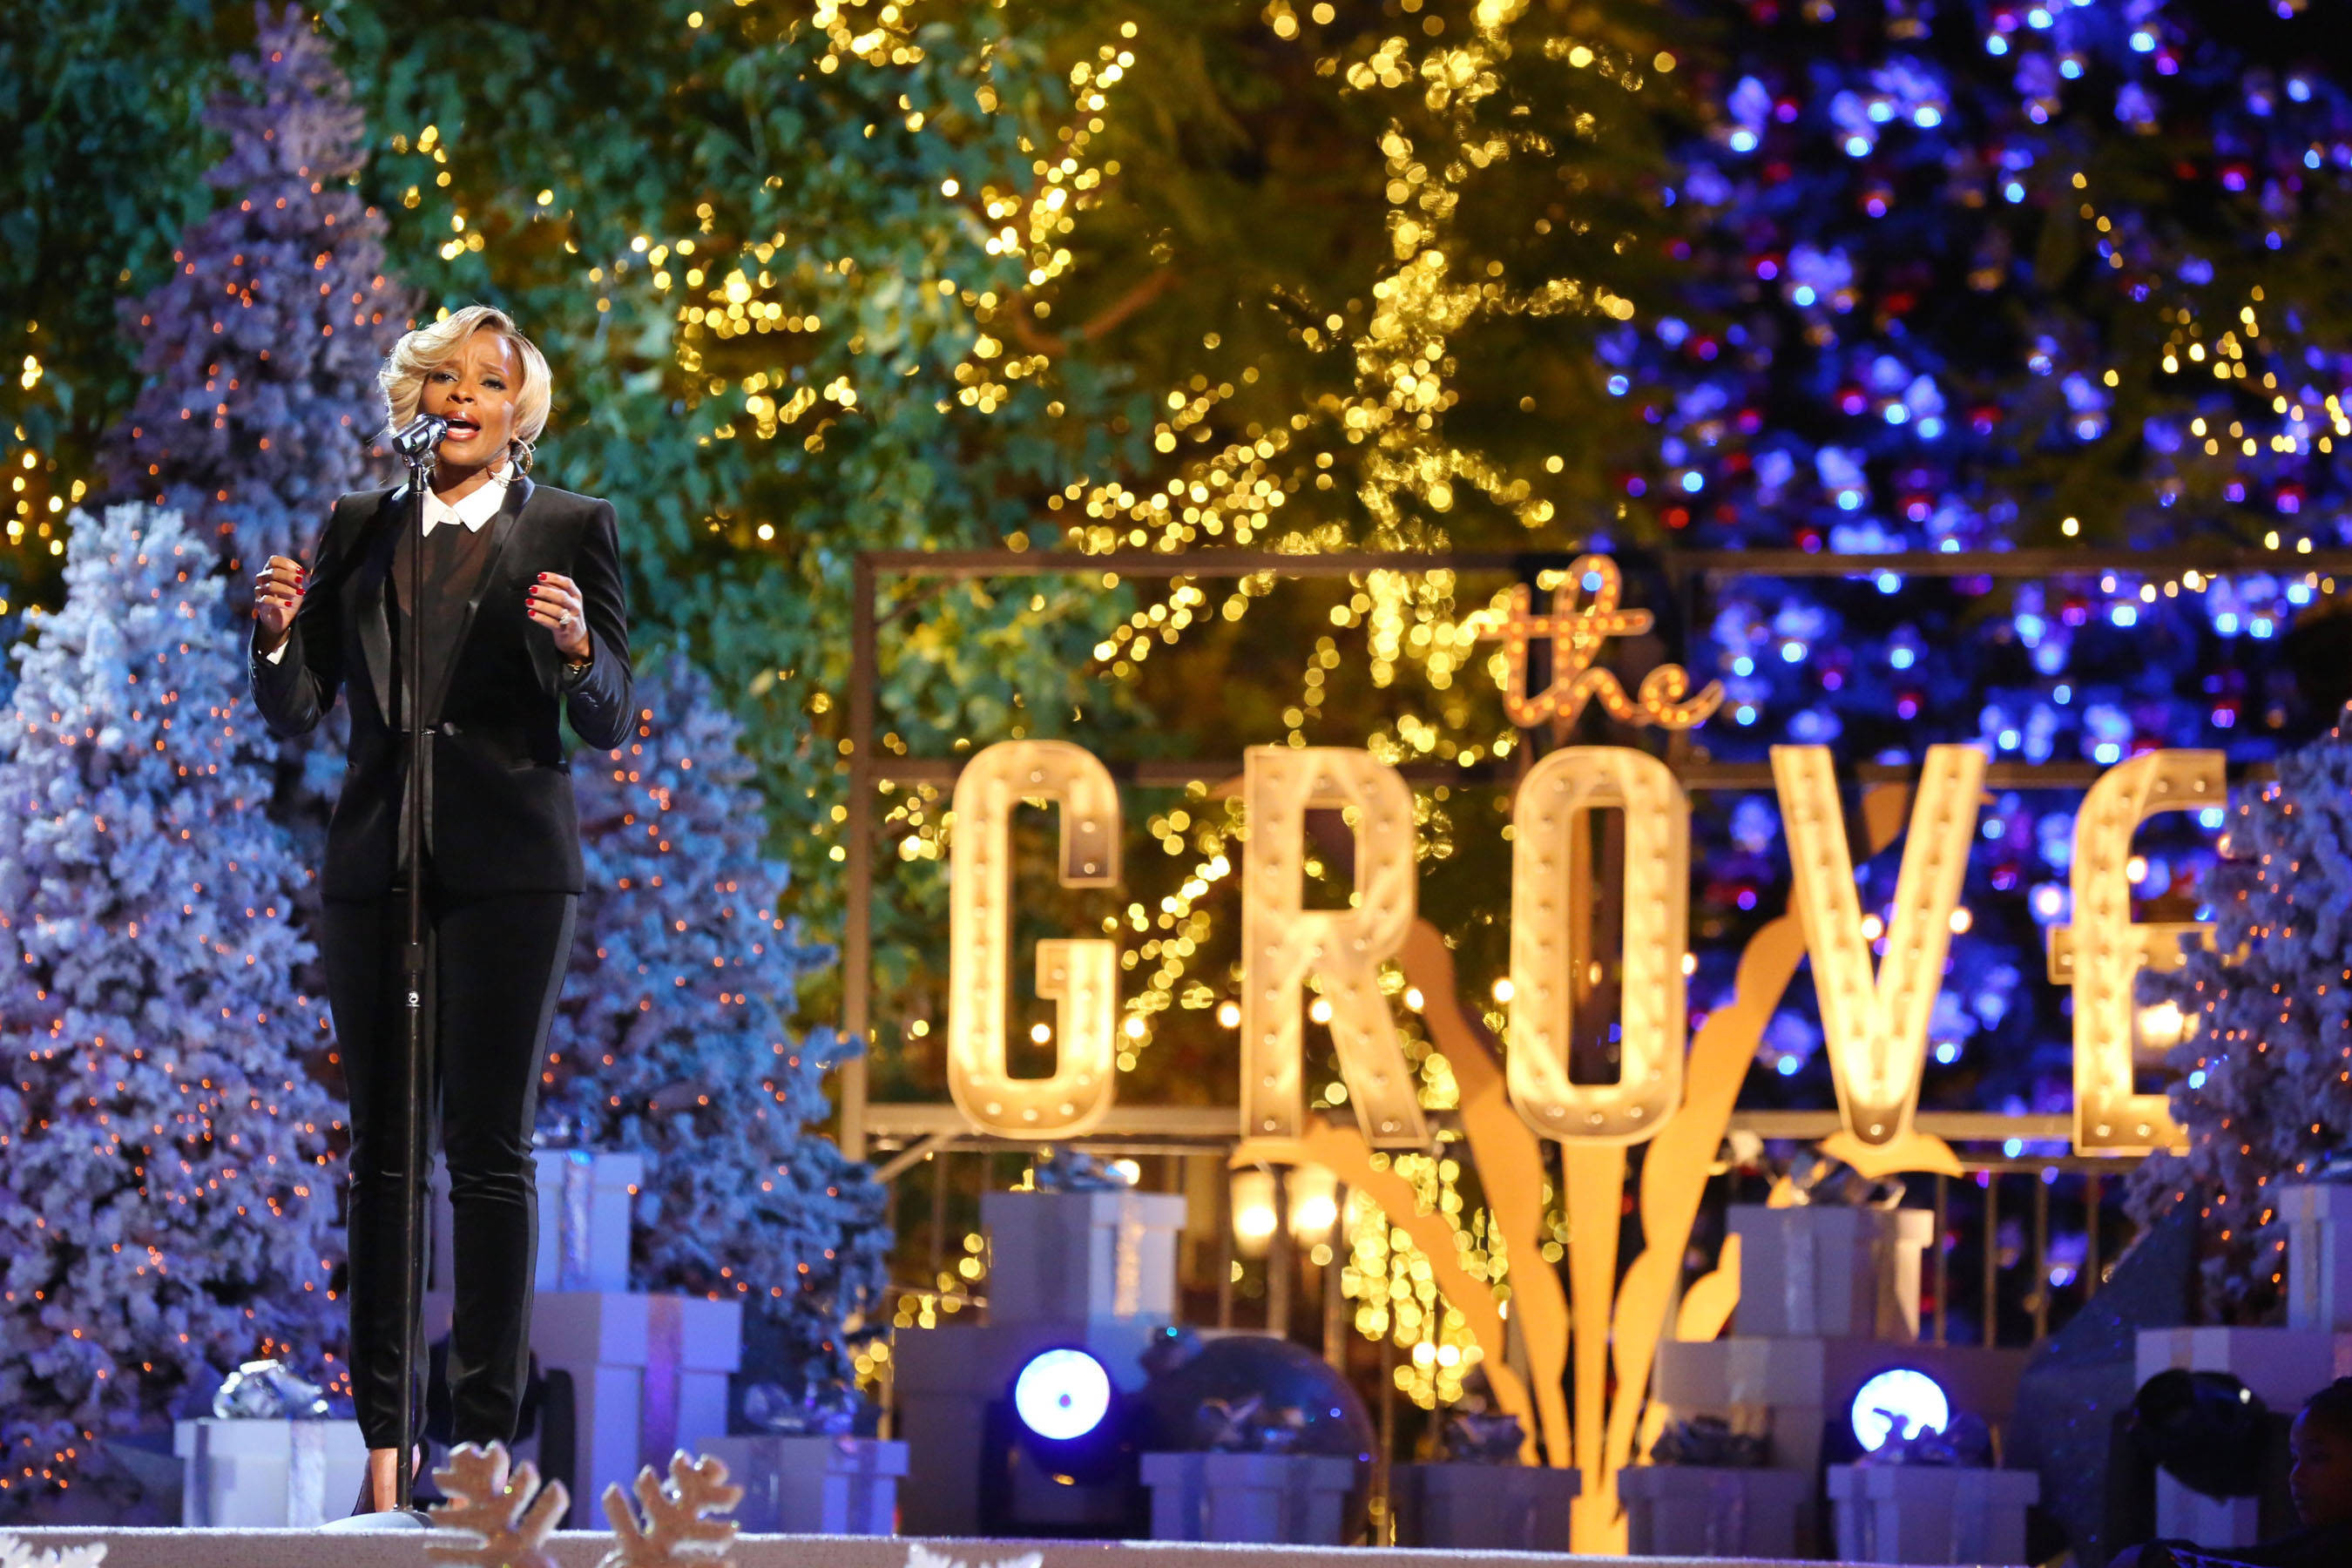 """Mary J. Blige Performing At """"A Hollywood Christmas at The Grove, Presented by Cadillac"""" Photo Credit: Alexandra Wyman/Invision for Caruso Affiliated/AP Images. (PRNewsFoto/Caruso Affiliated) (PRNewsFoto/CARUSO AFFILIATED)"""